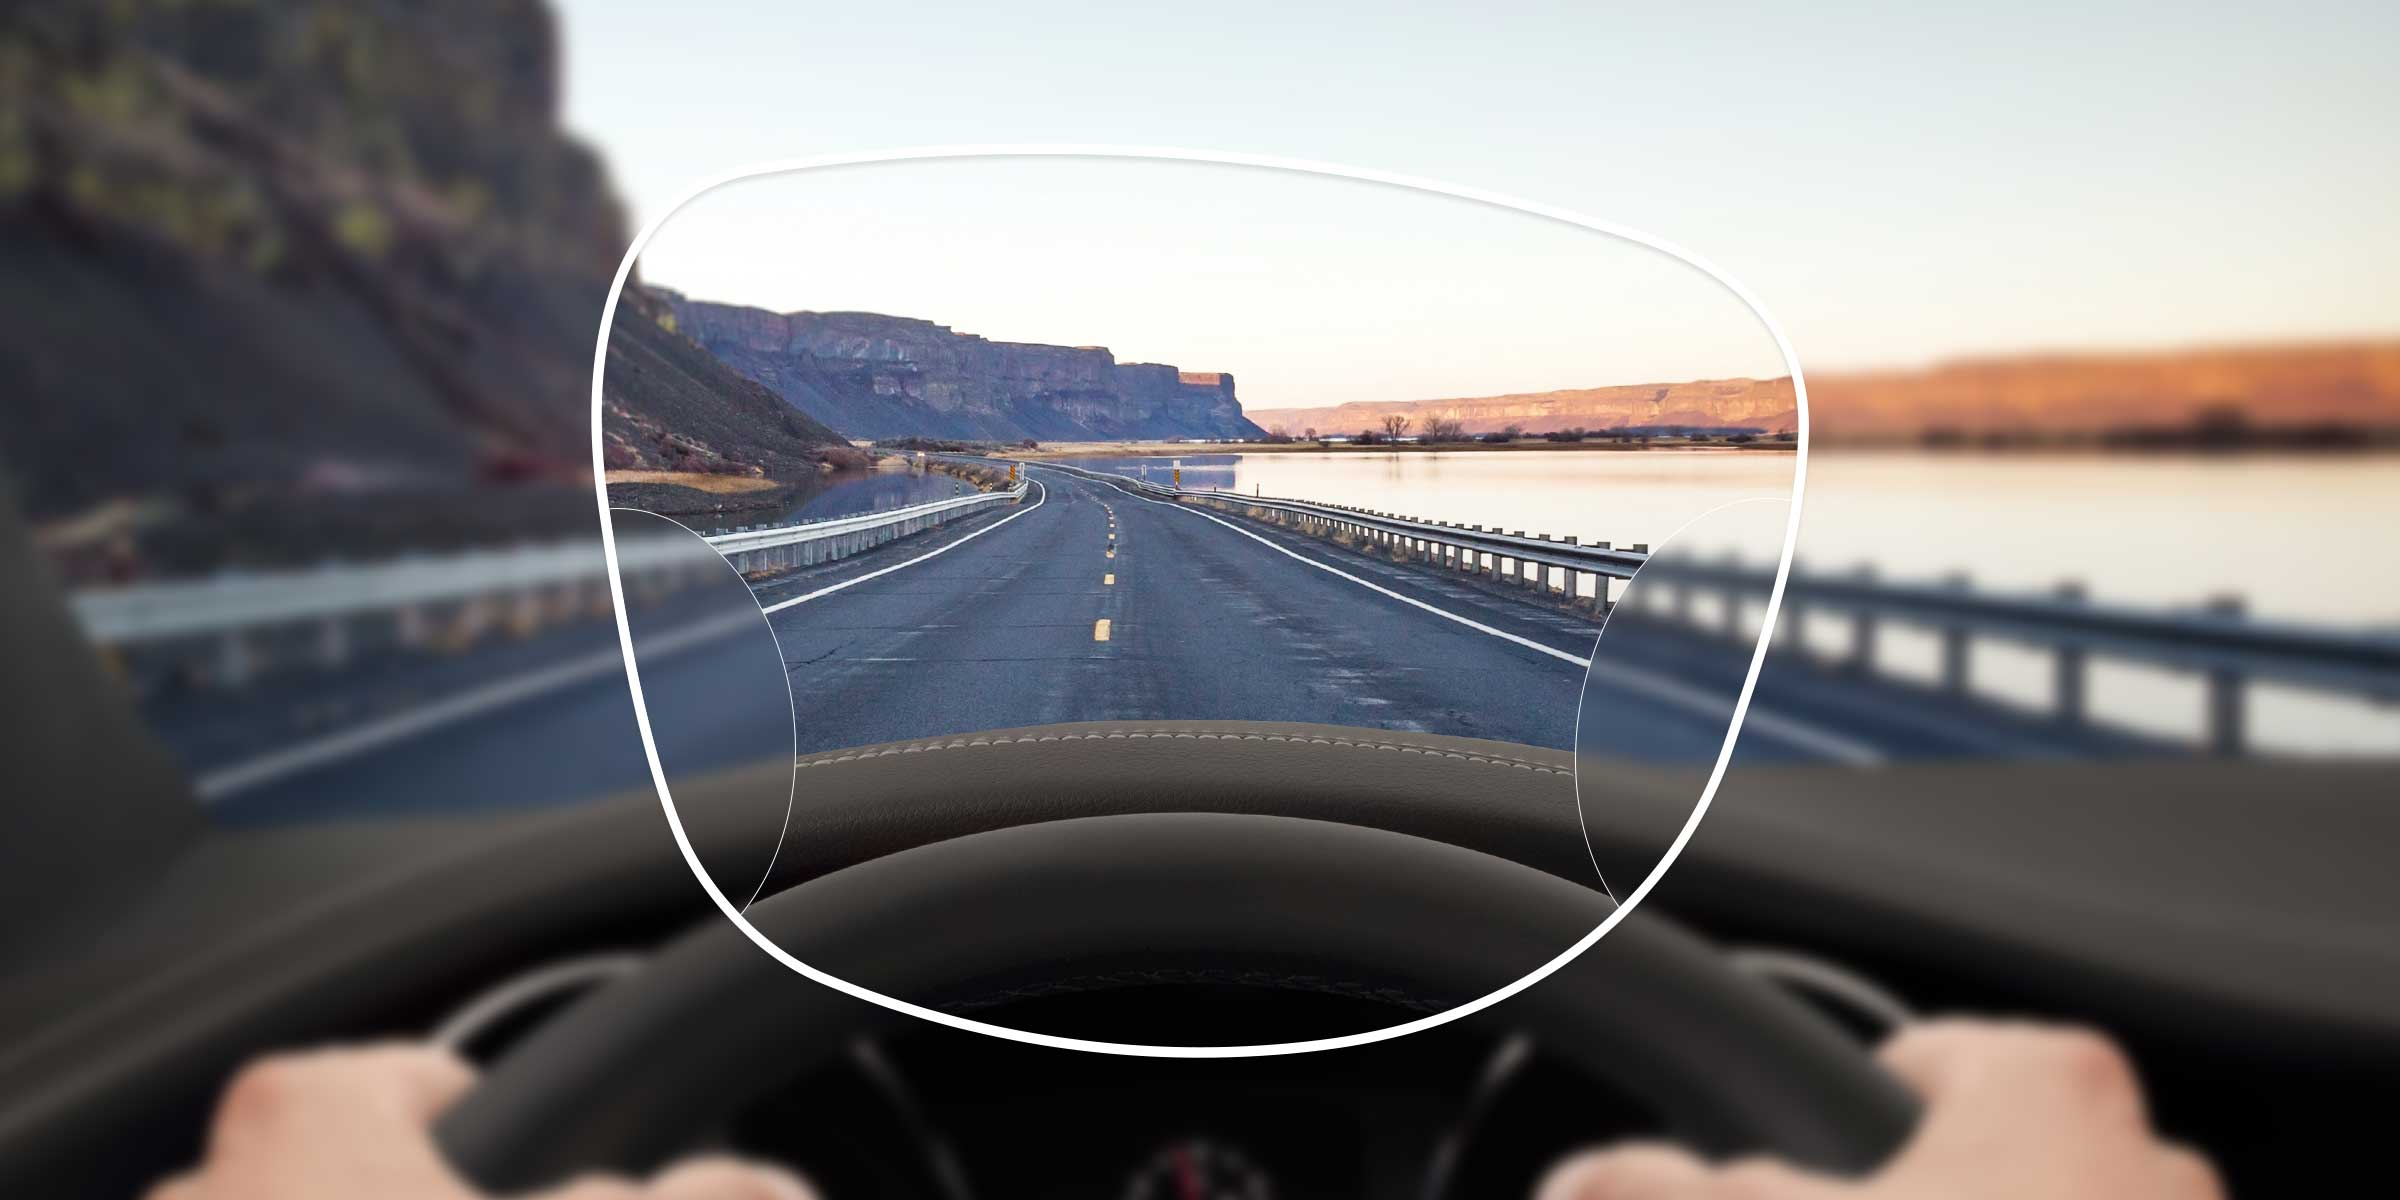 View of a motorway from the driver's seat through a varifocal supreme HD lens